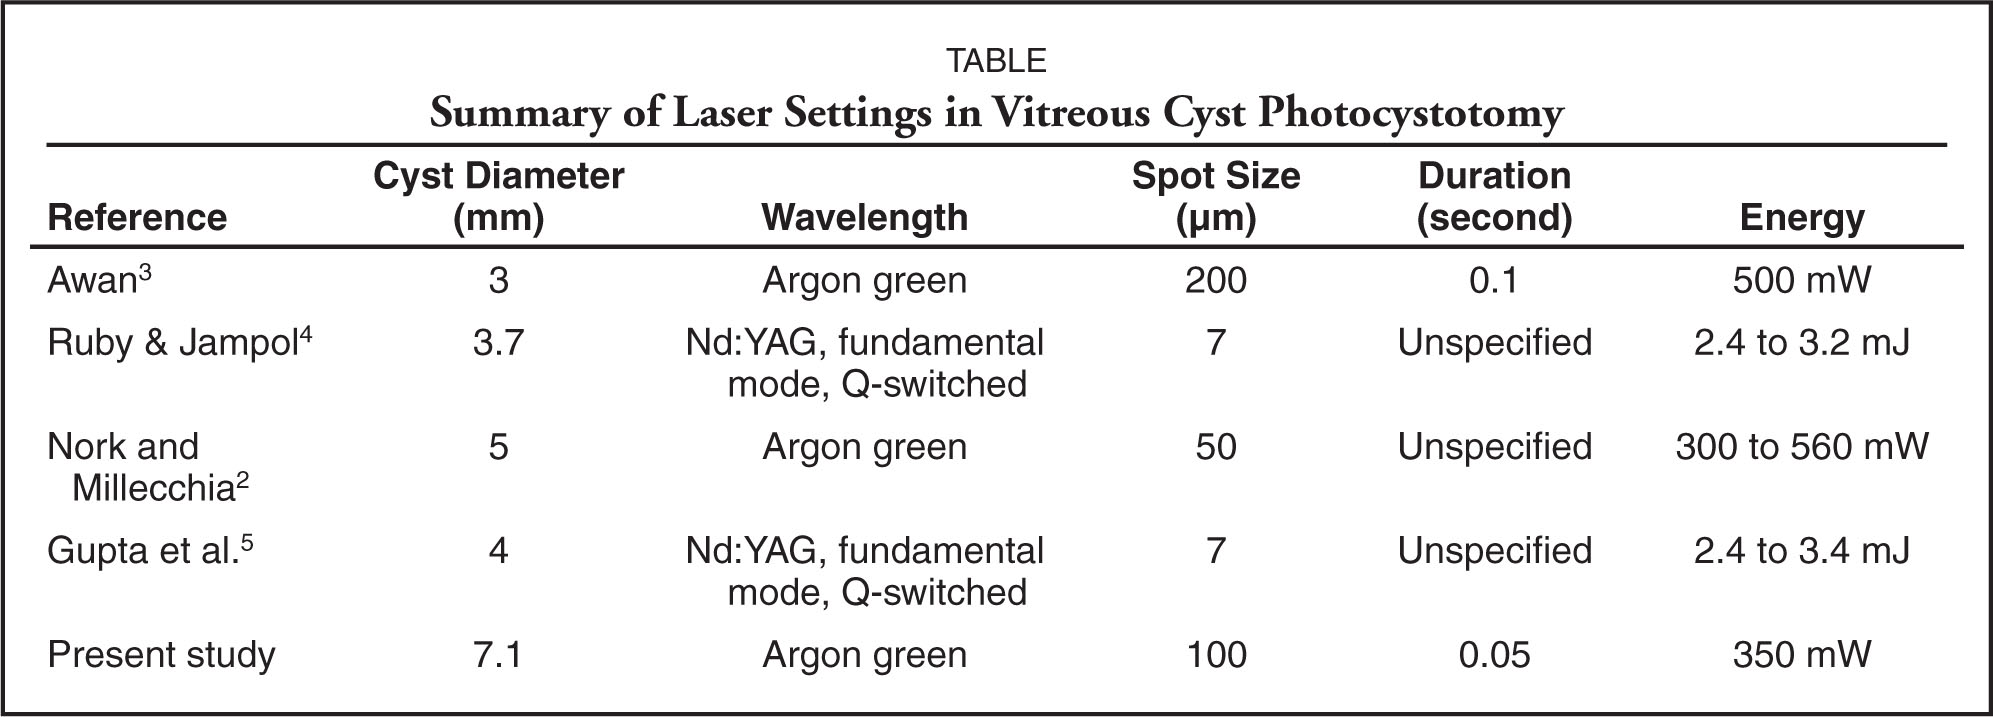 Summary of Laser Settings in Vitreous Cyst Photocystotomy